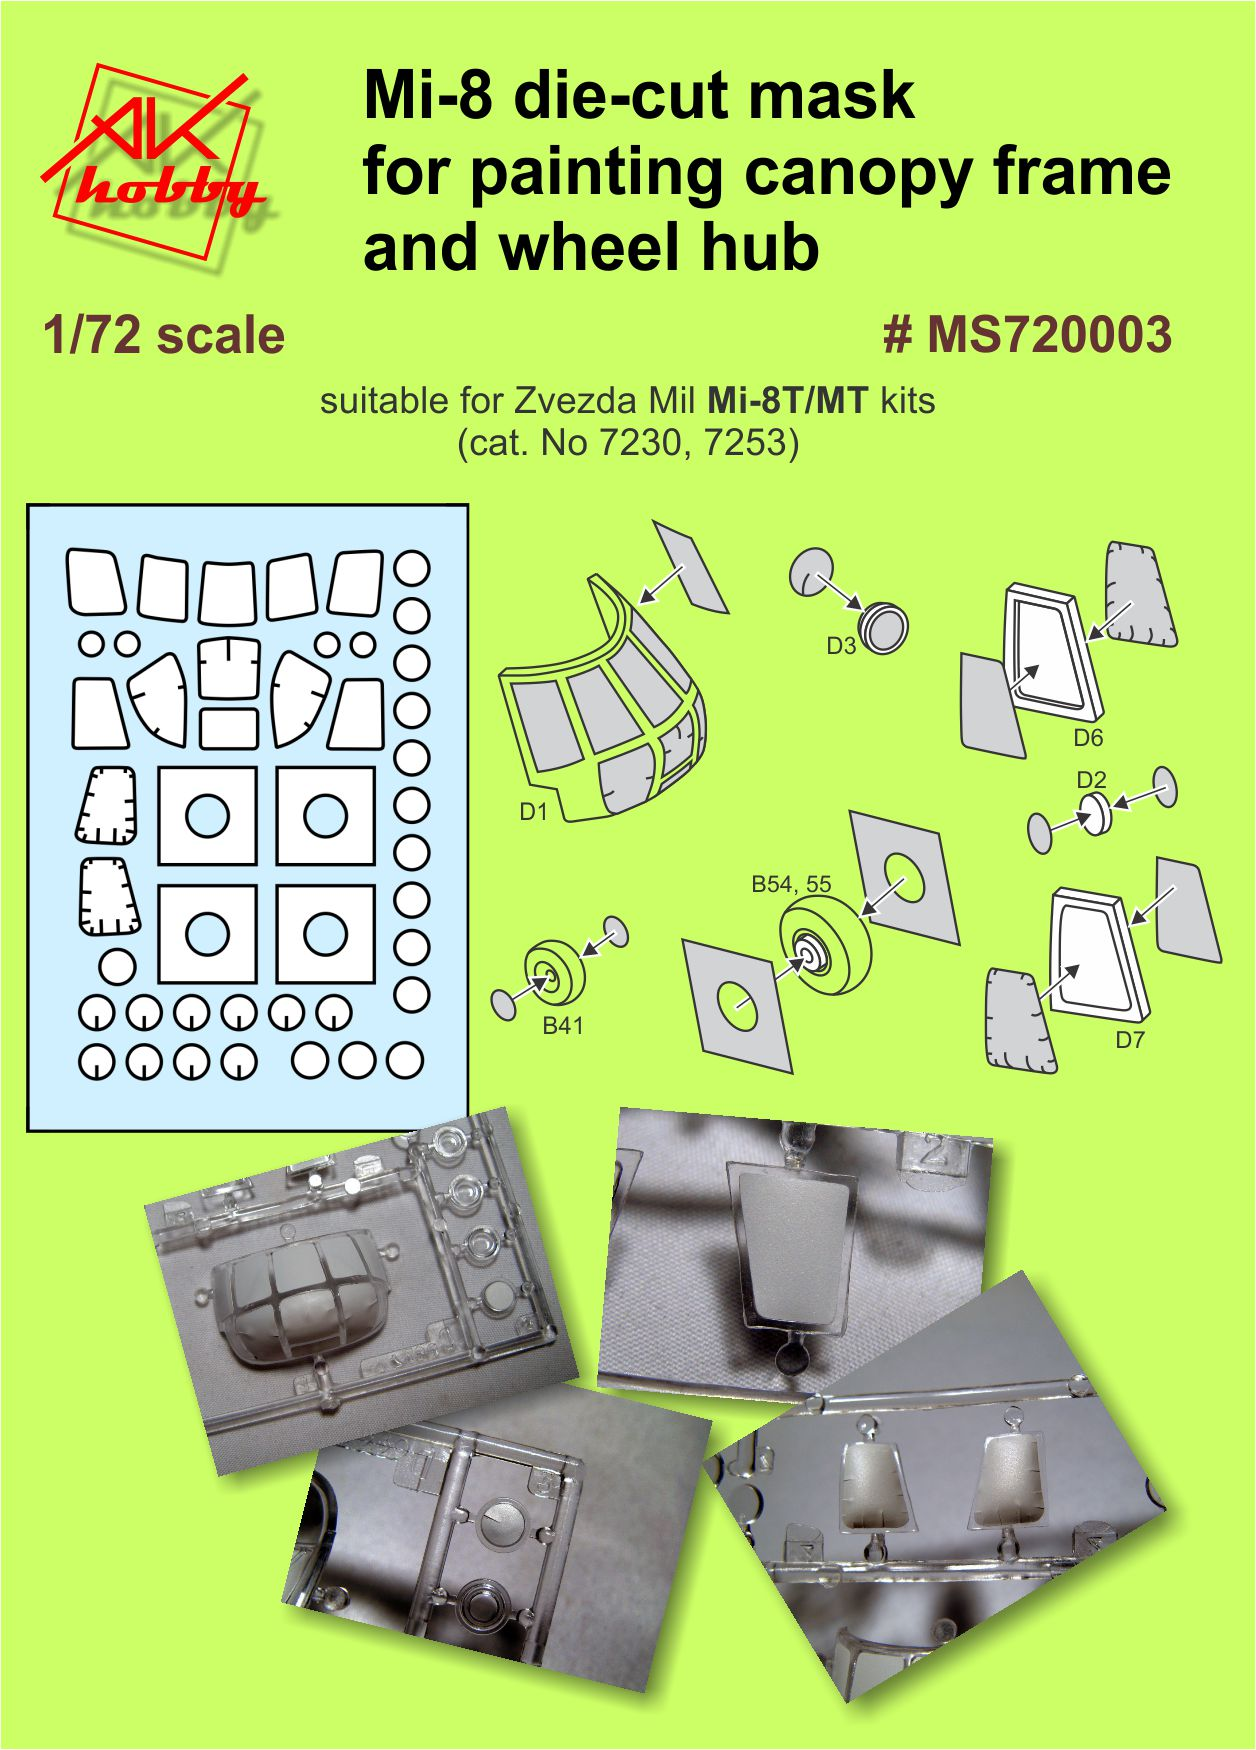 MS 720003 Mi-8 die-cut mask for painting canopy frame and wheel hup